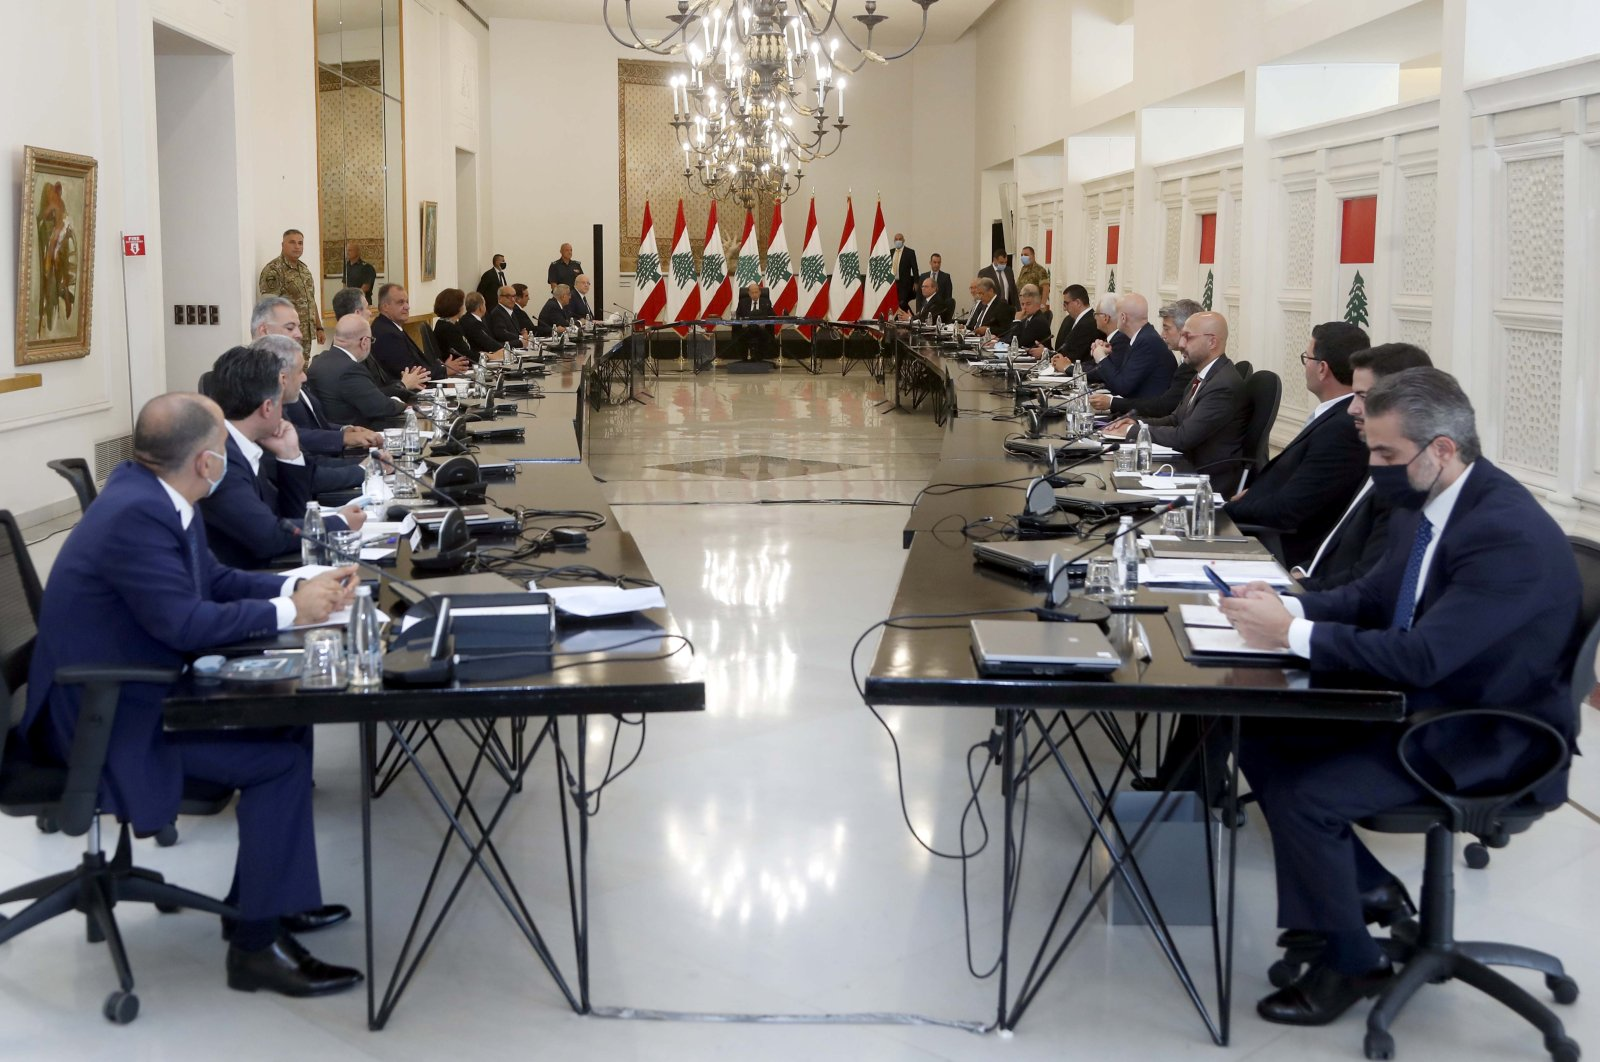 Lebanon's President Michel Aoun heads the new government's first Cabinet meeting at the presidential palace in Baabda, Lebanon, Sept. 13, 2021. (REUTERS Photo)